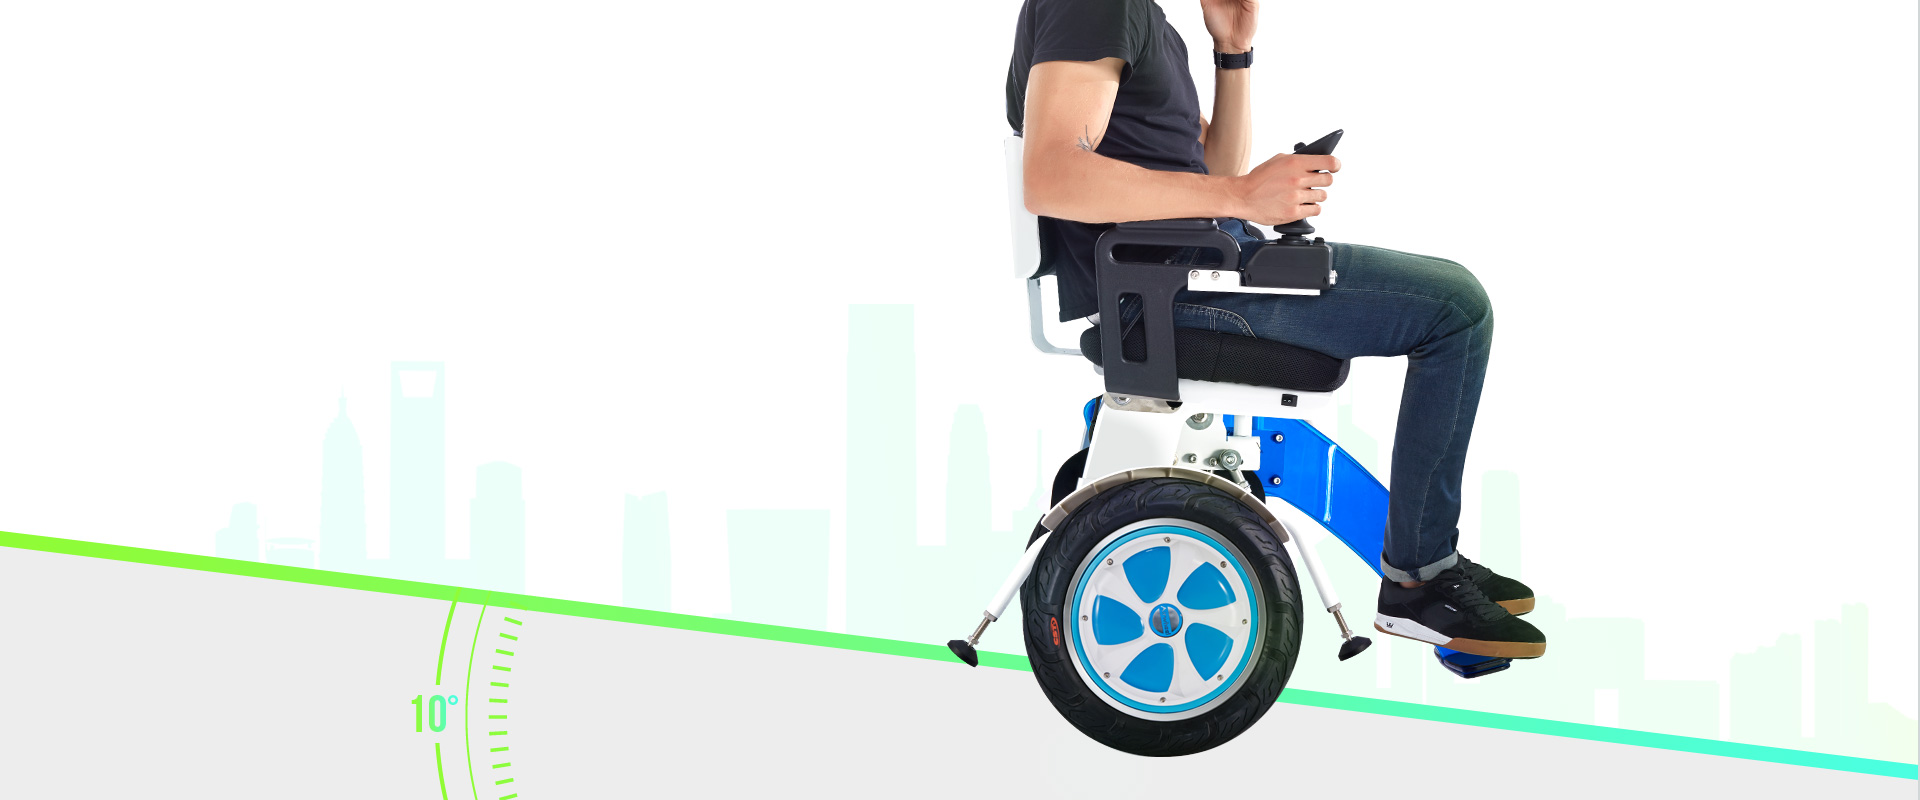 Airwheel A6S intelligent self-balancing wheelchair